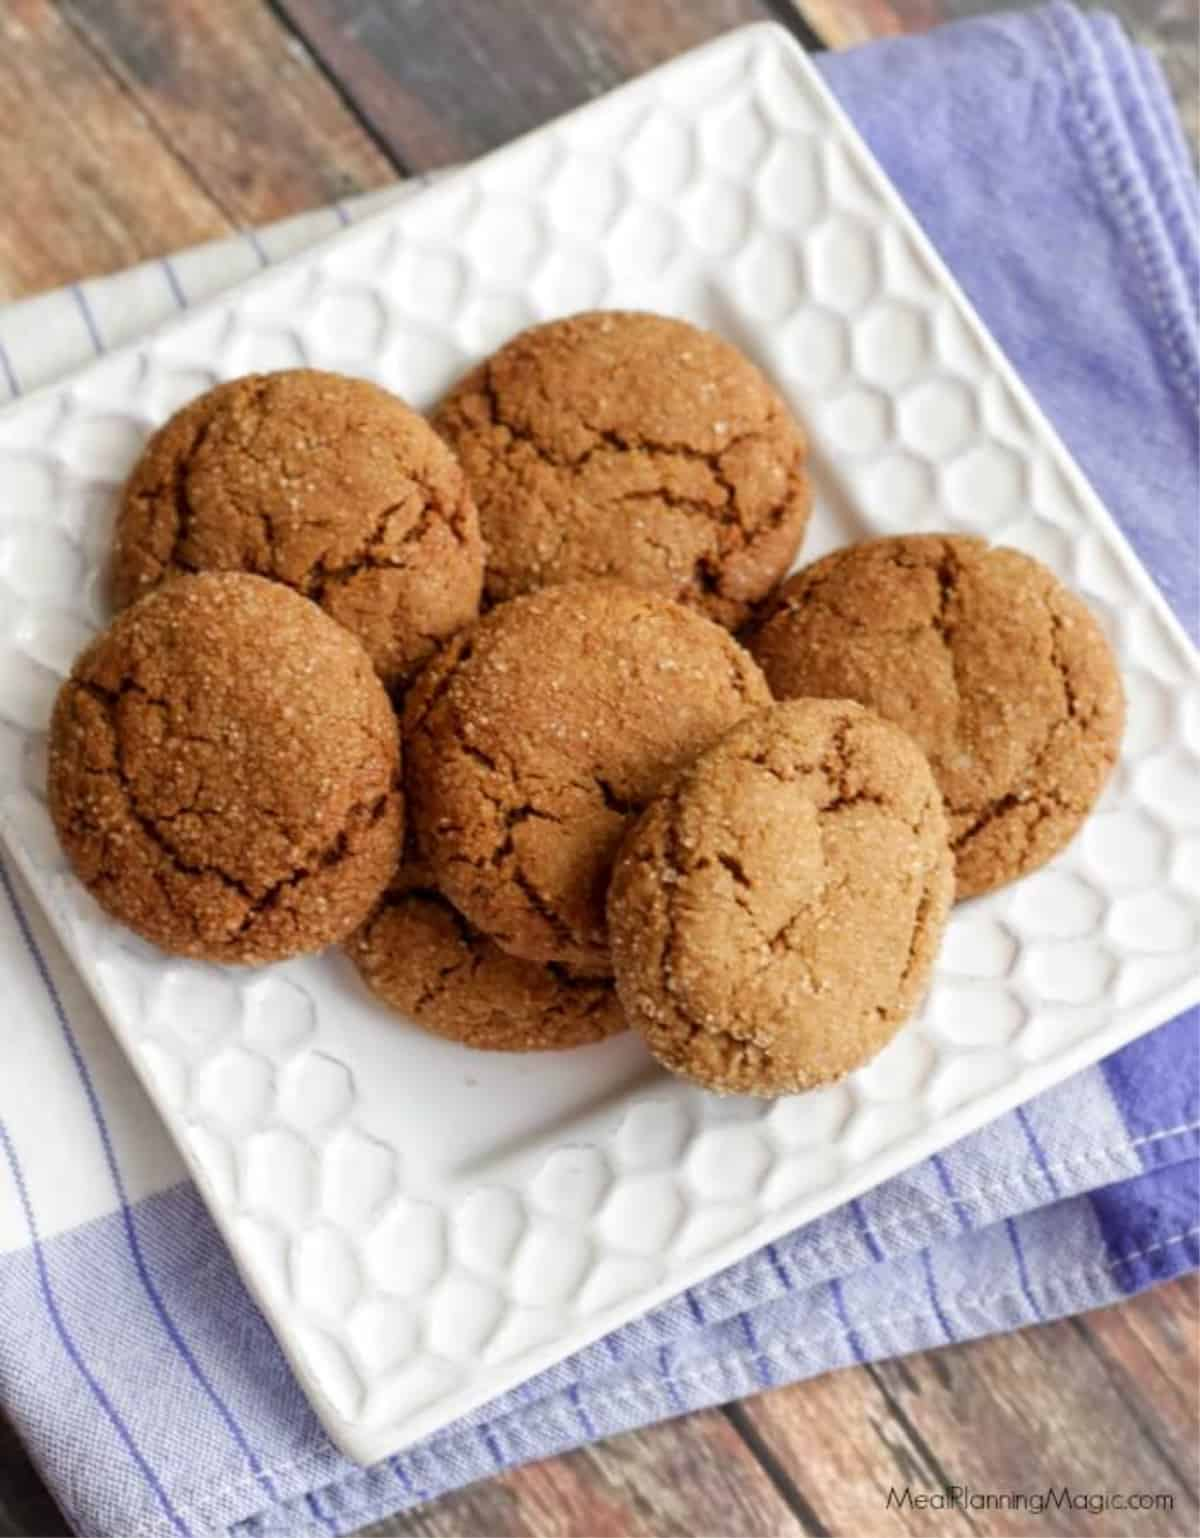 Pile of soft and chewy molasses ginger cookies on a square white plate on top of a blue napkin.